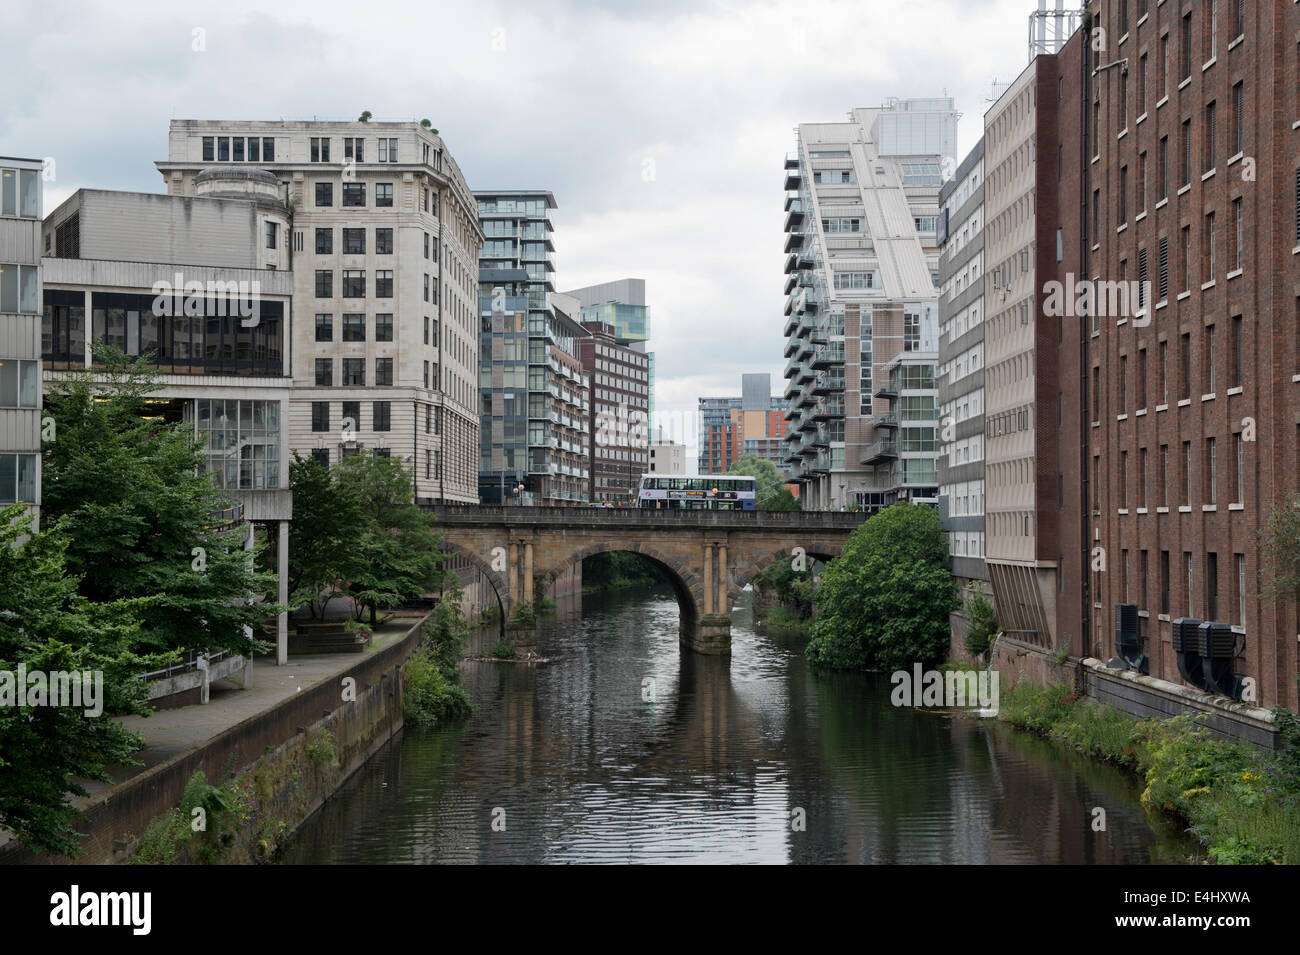 A view of Blackfriars Street bridge, the Manchester Ship Canal / River Irwell, and Salford, taken from Victoria - Stock Image